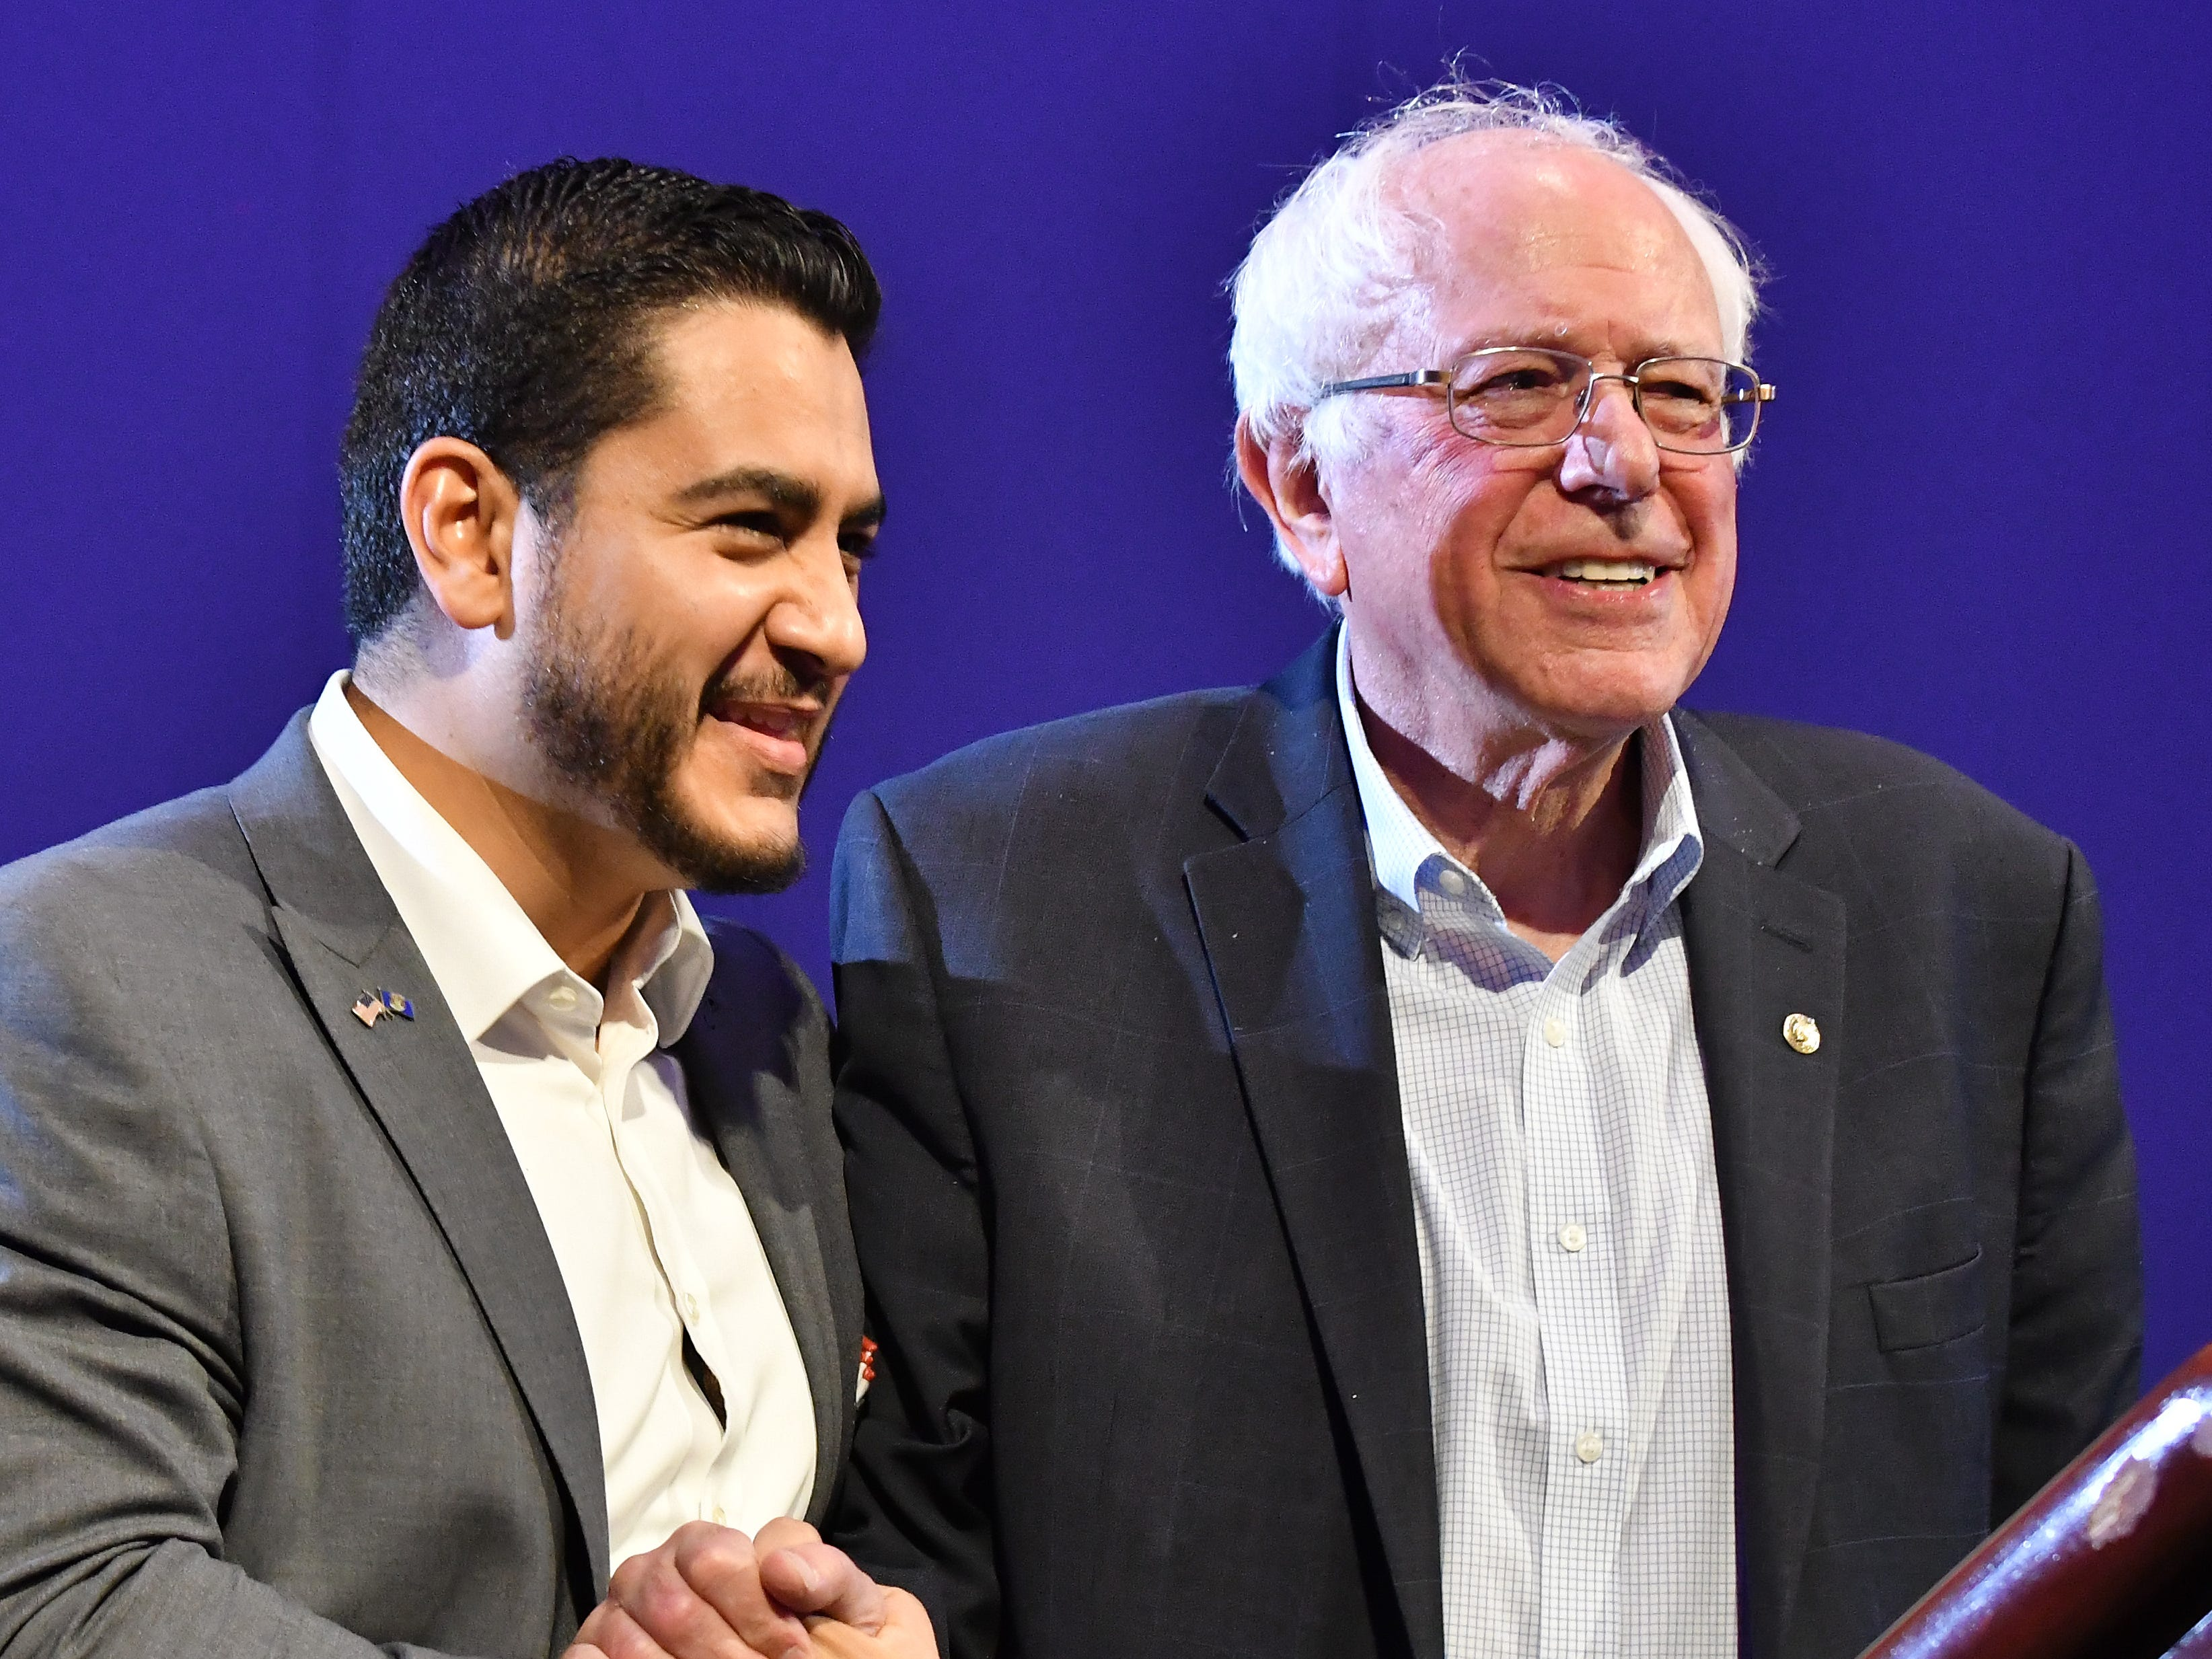 Michigan Democratic gubernatorial candidate Abdul El-Sayed and U.S. Sen. Bernie Sanders at the end of Sanders' speech at Cobo Center in Detroit on August 5, 2018.